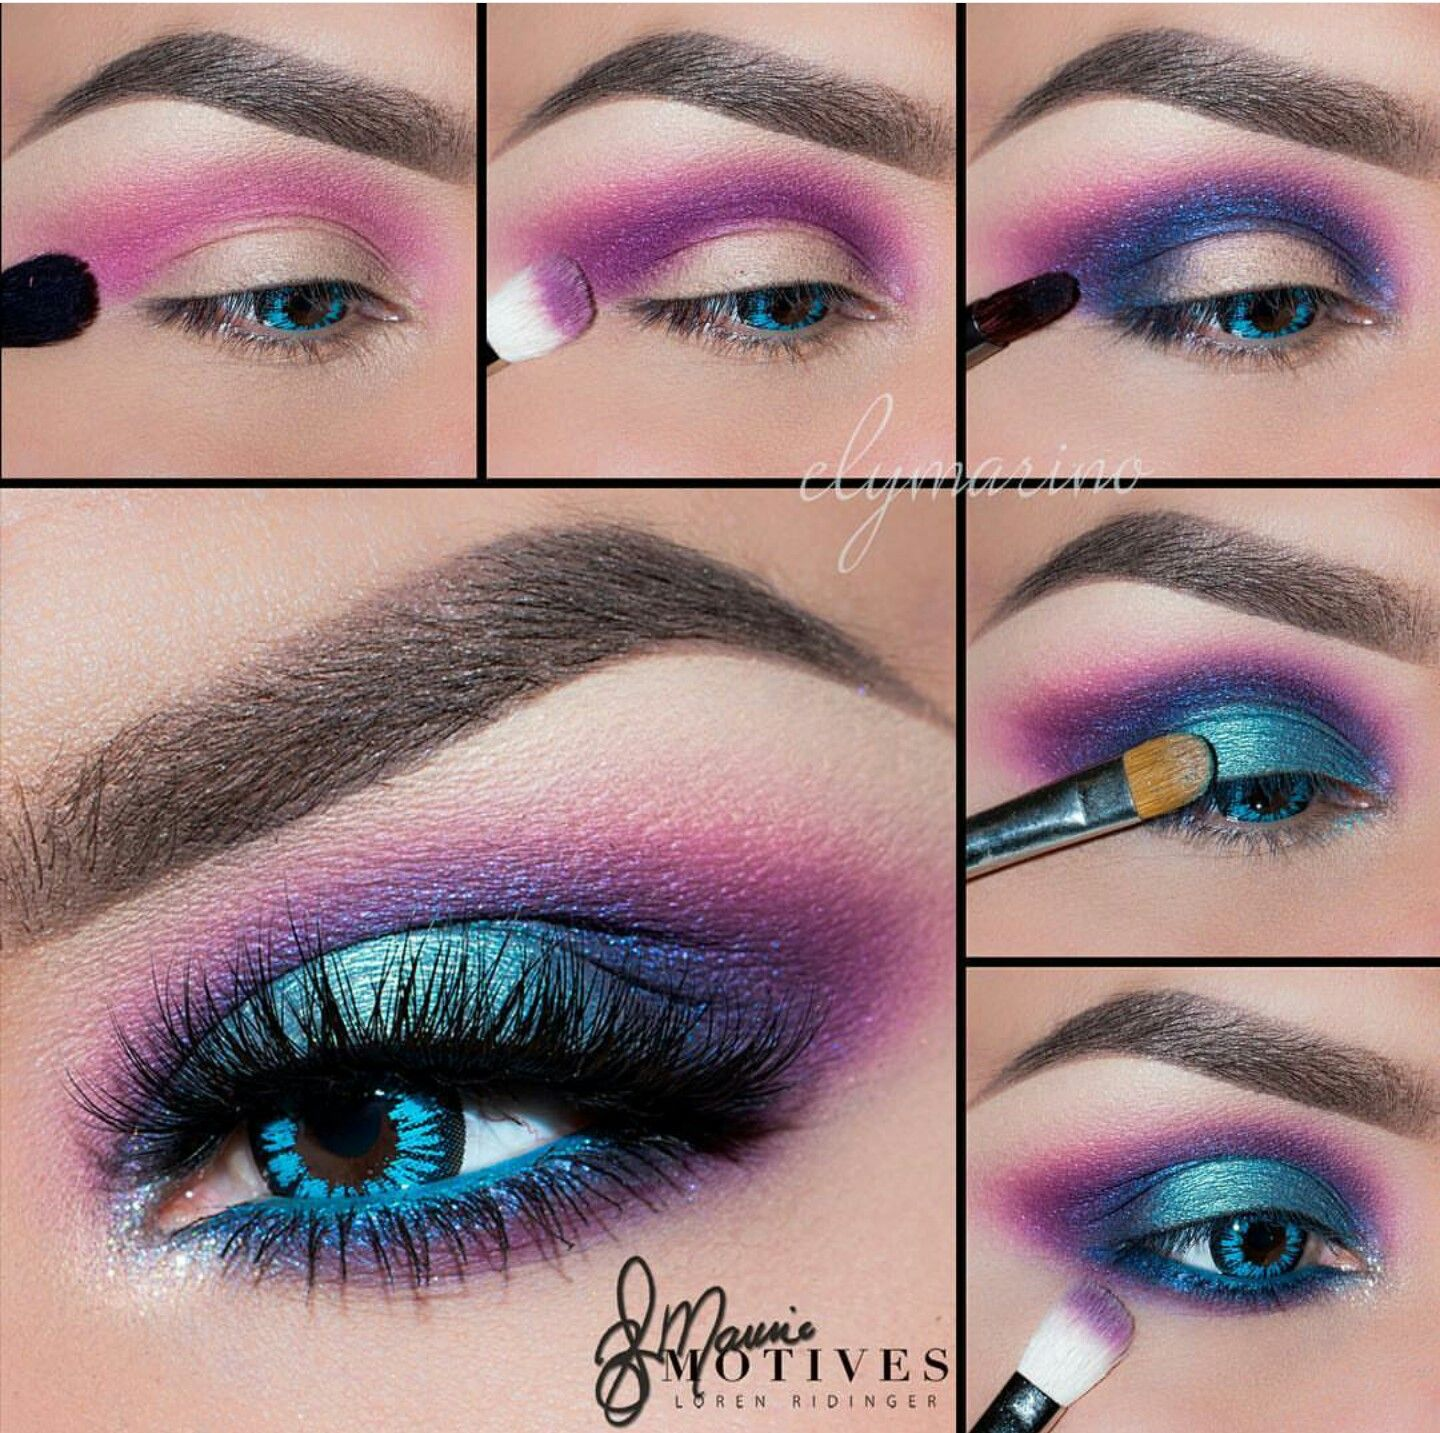 electric, neon, turquoise, blue, purple, pink, eye makeup